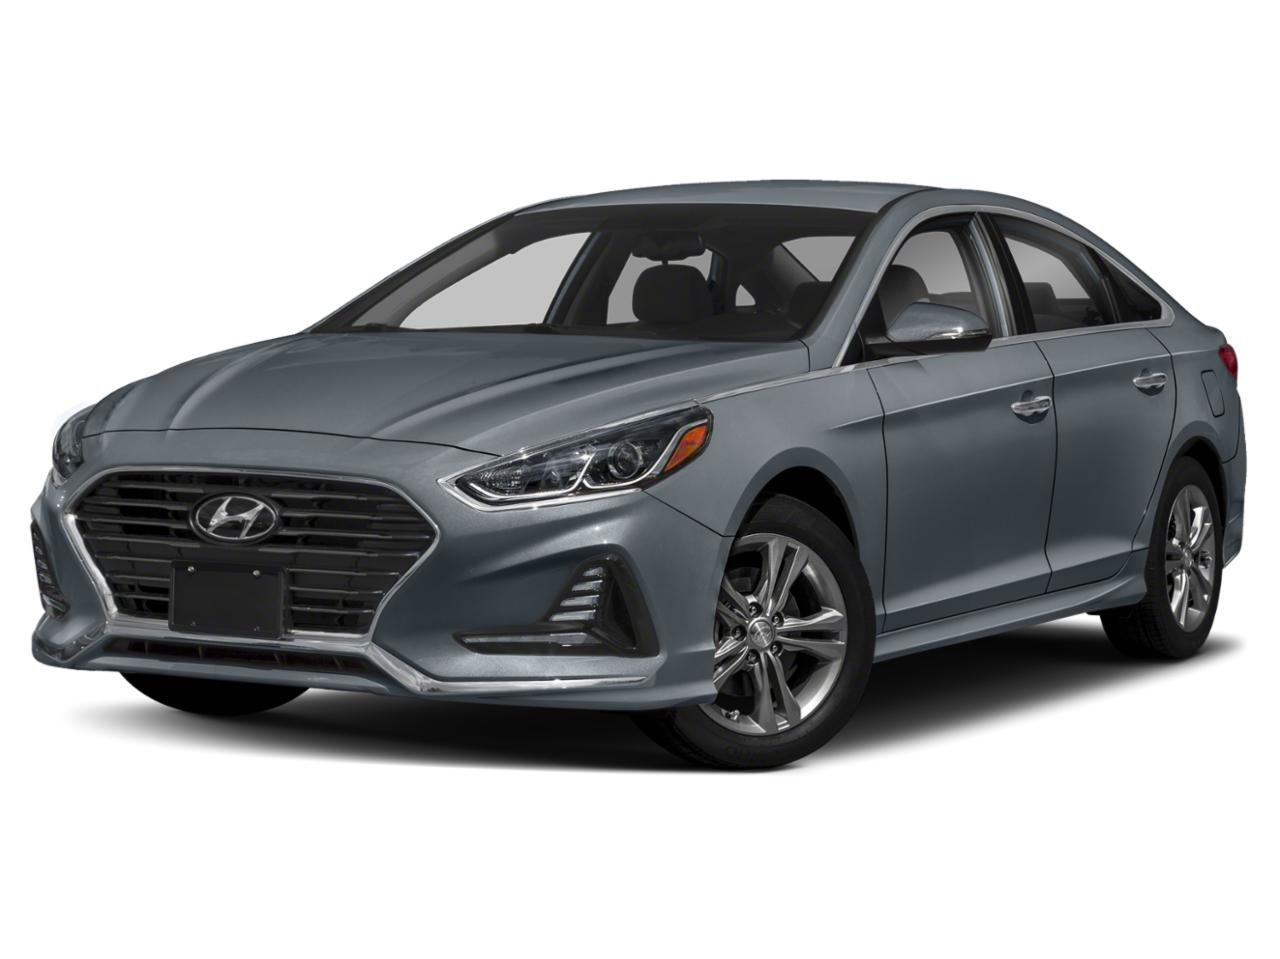 2019 Hyundai Sonata Vehicle Photo in Mission, TX 78572